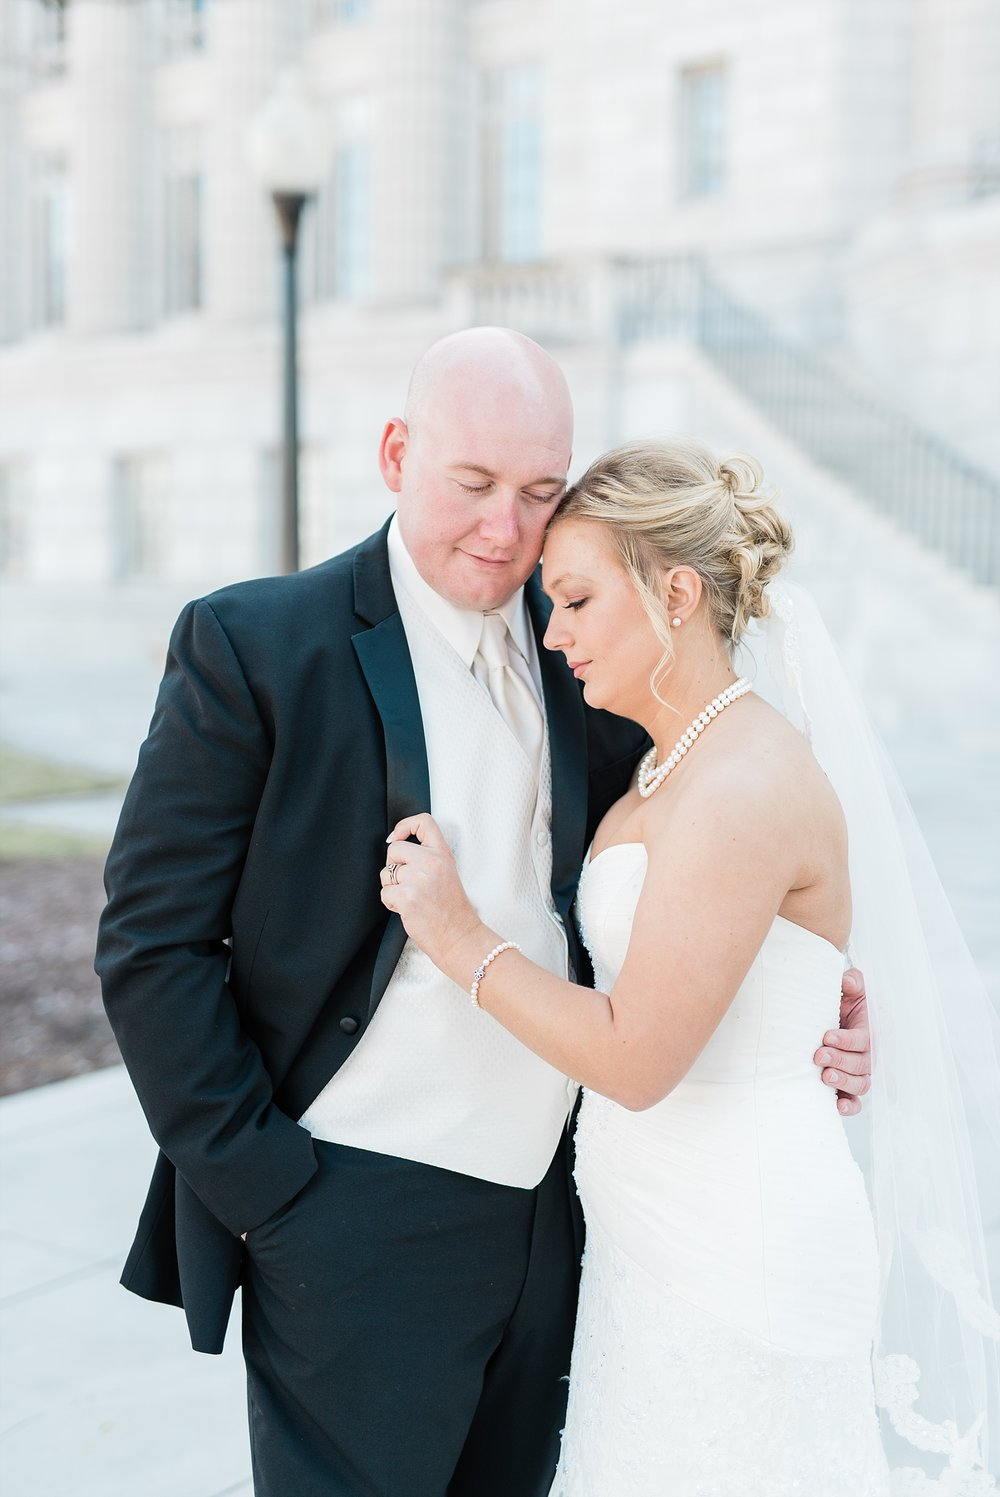 Light and Airy Spring Wedding Downtown Jefferson City Missouri State Capitol Millbottom_0017.jpg